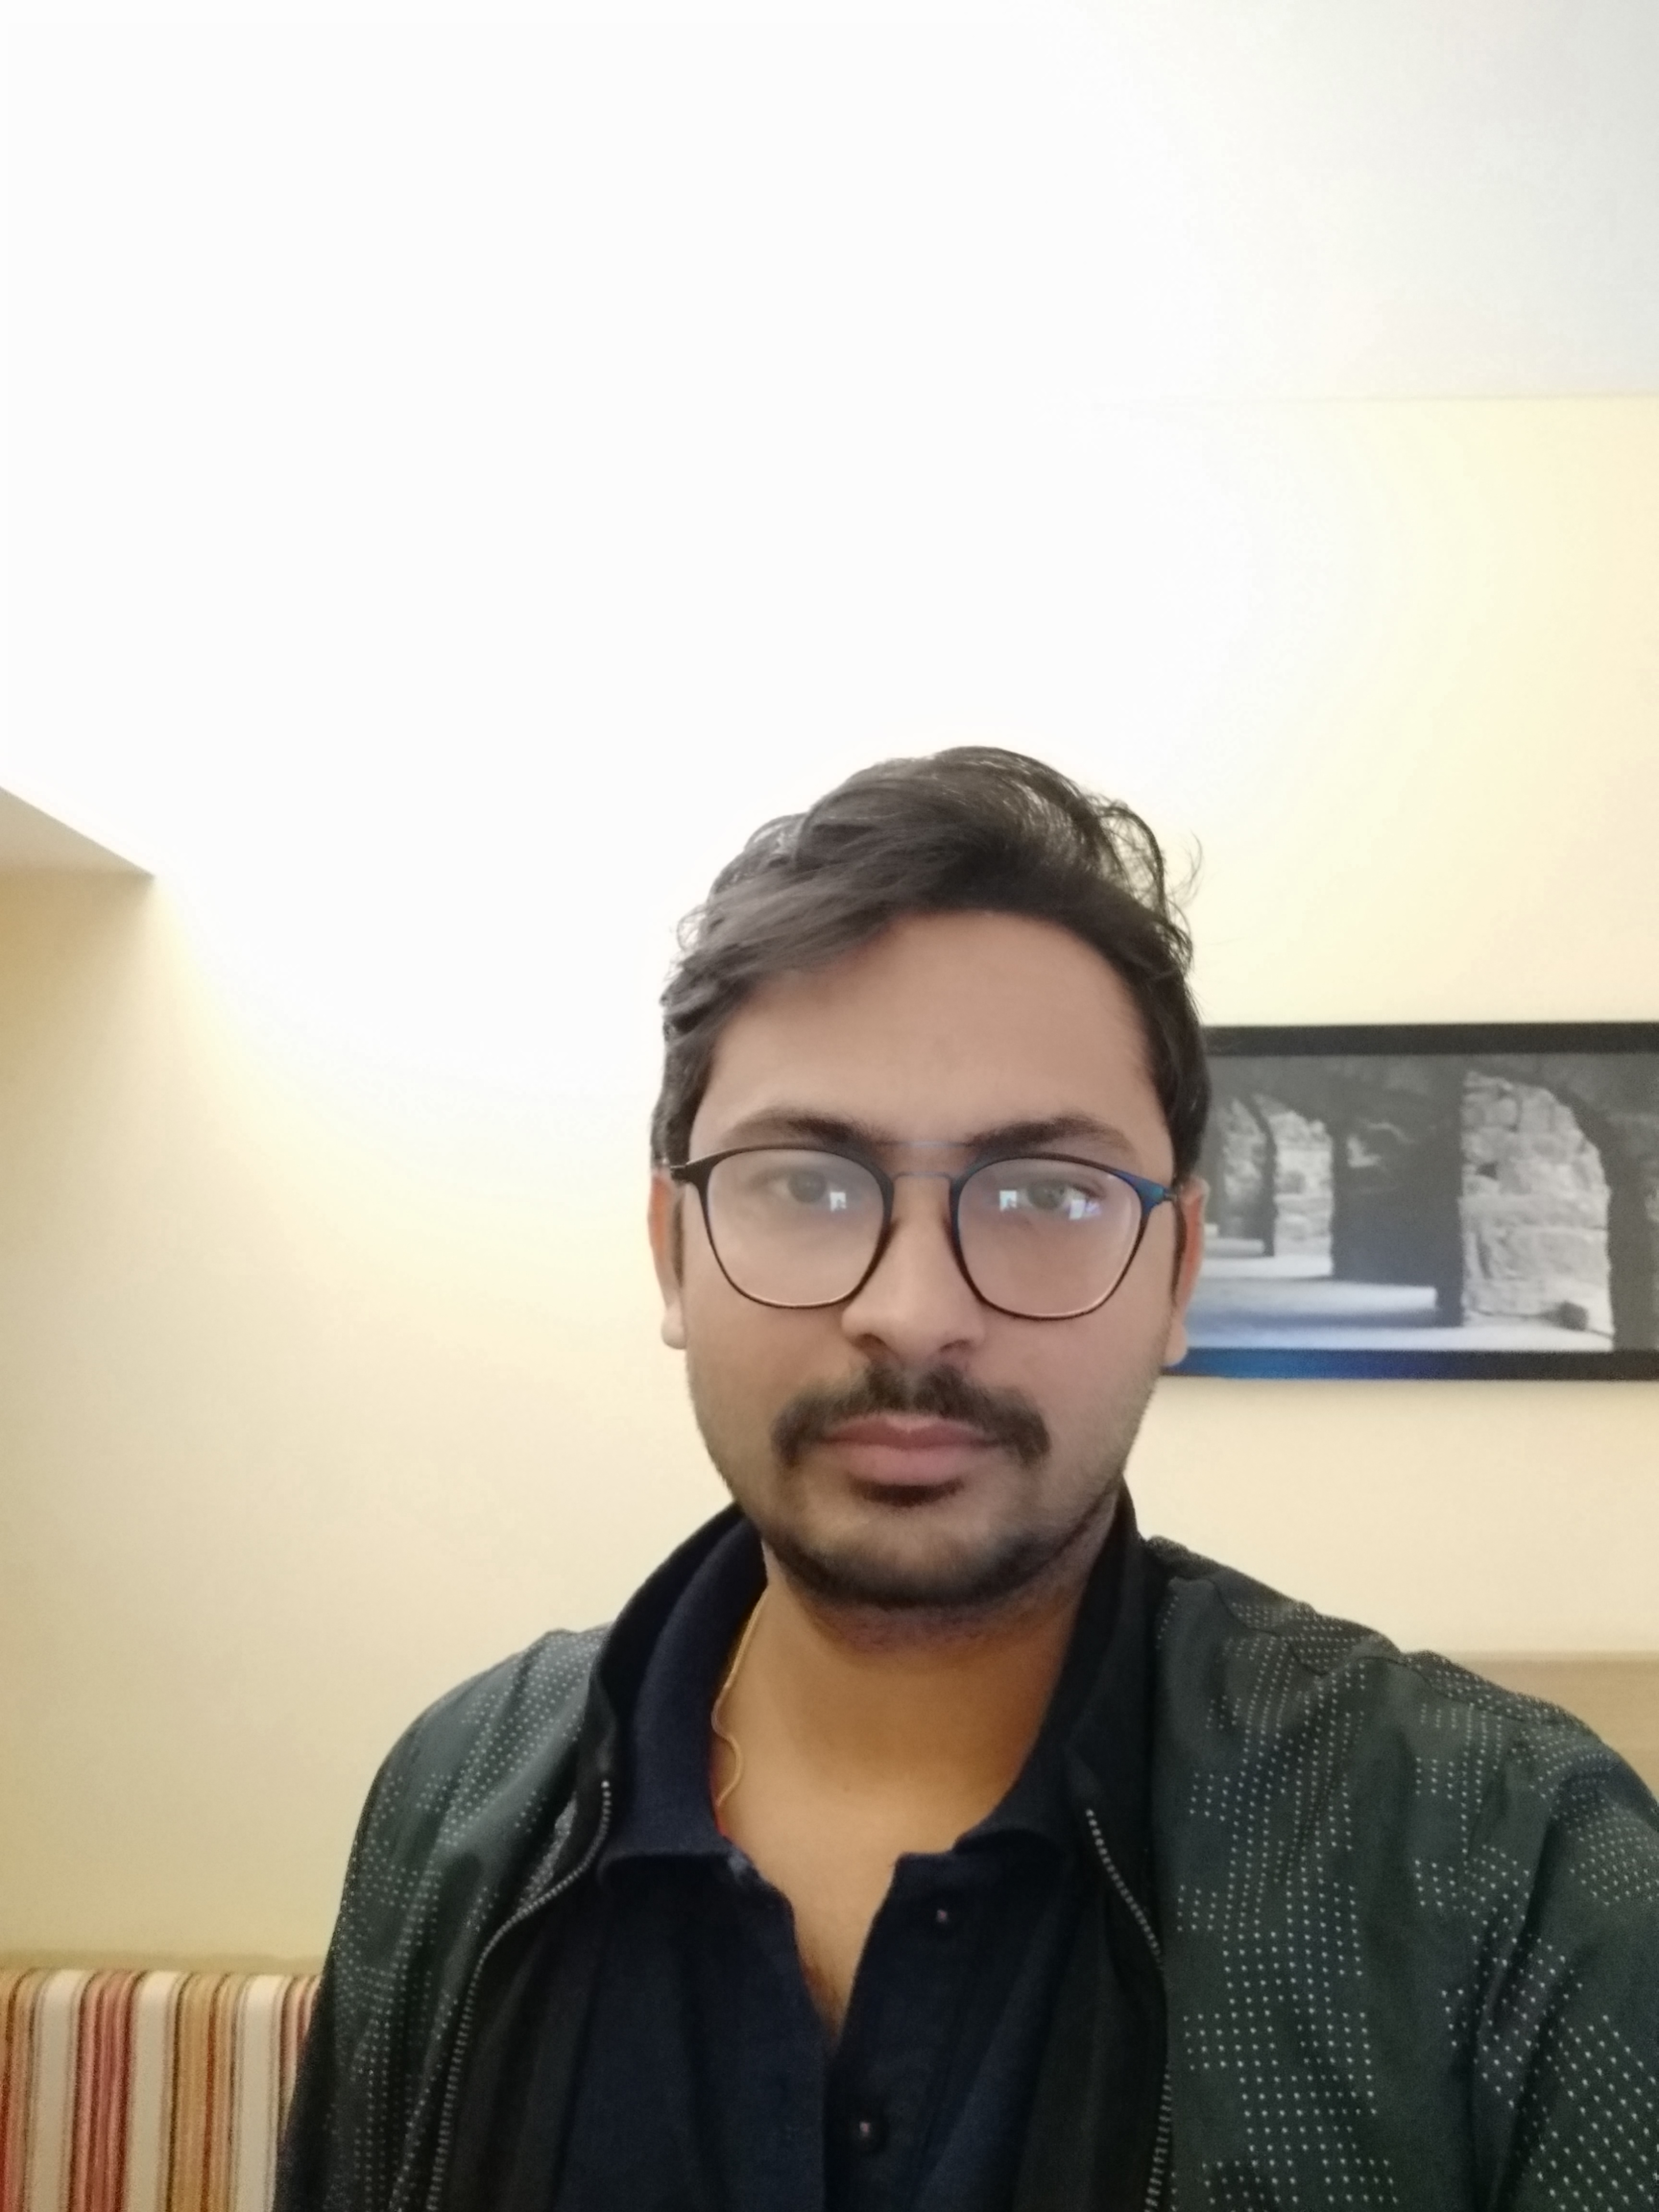 . Net Technology Expert with 9 years experience freelancer